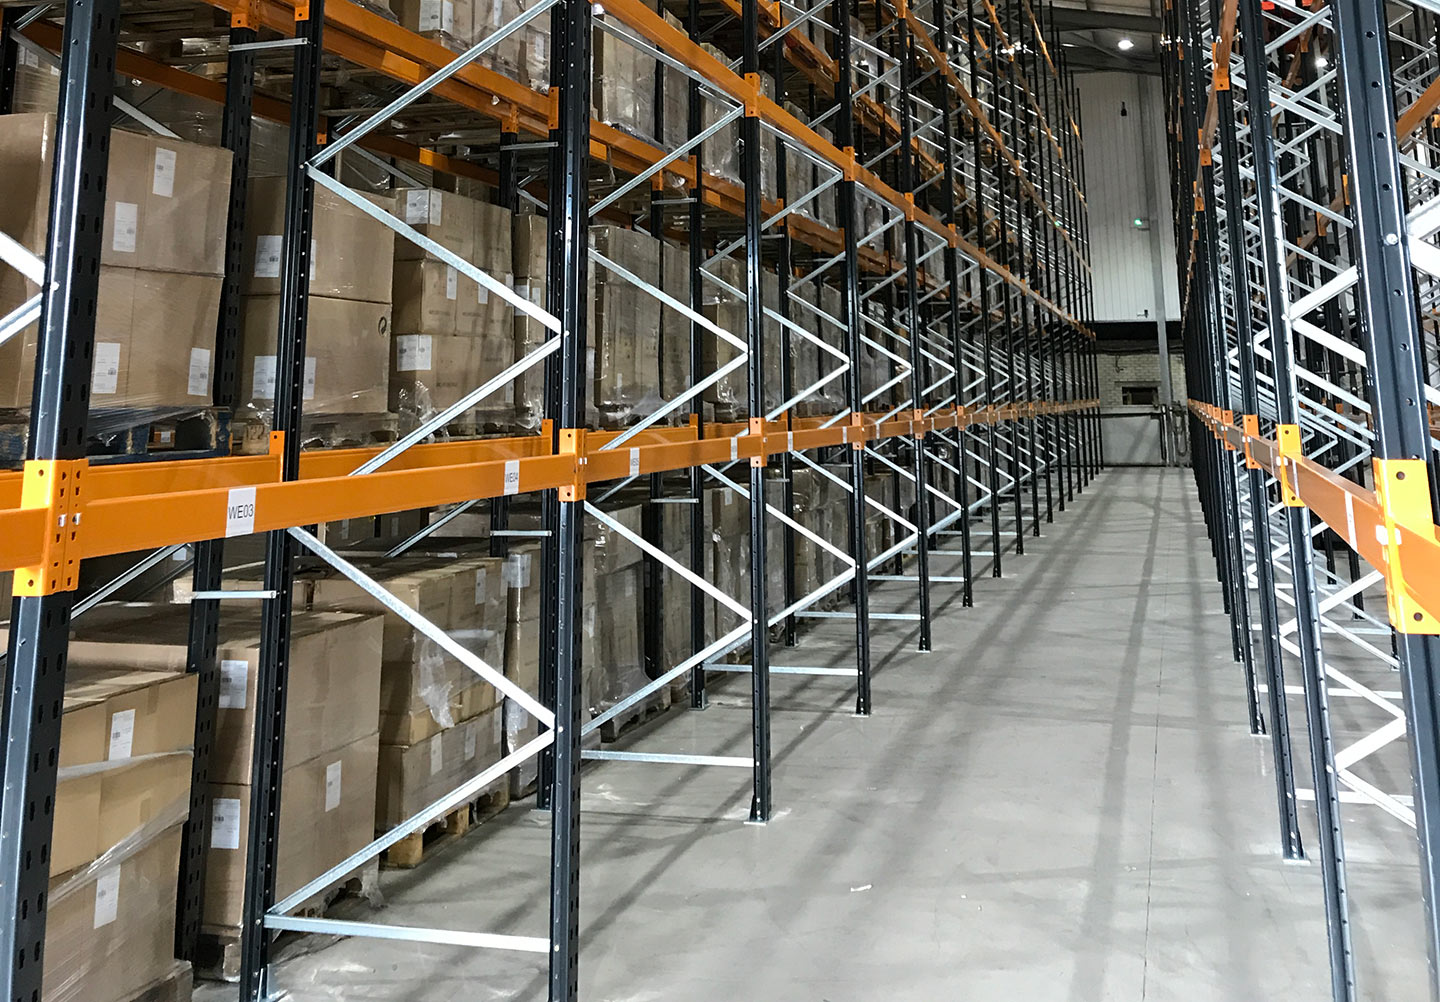 pallet racking inspection and repairs